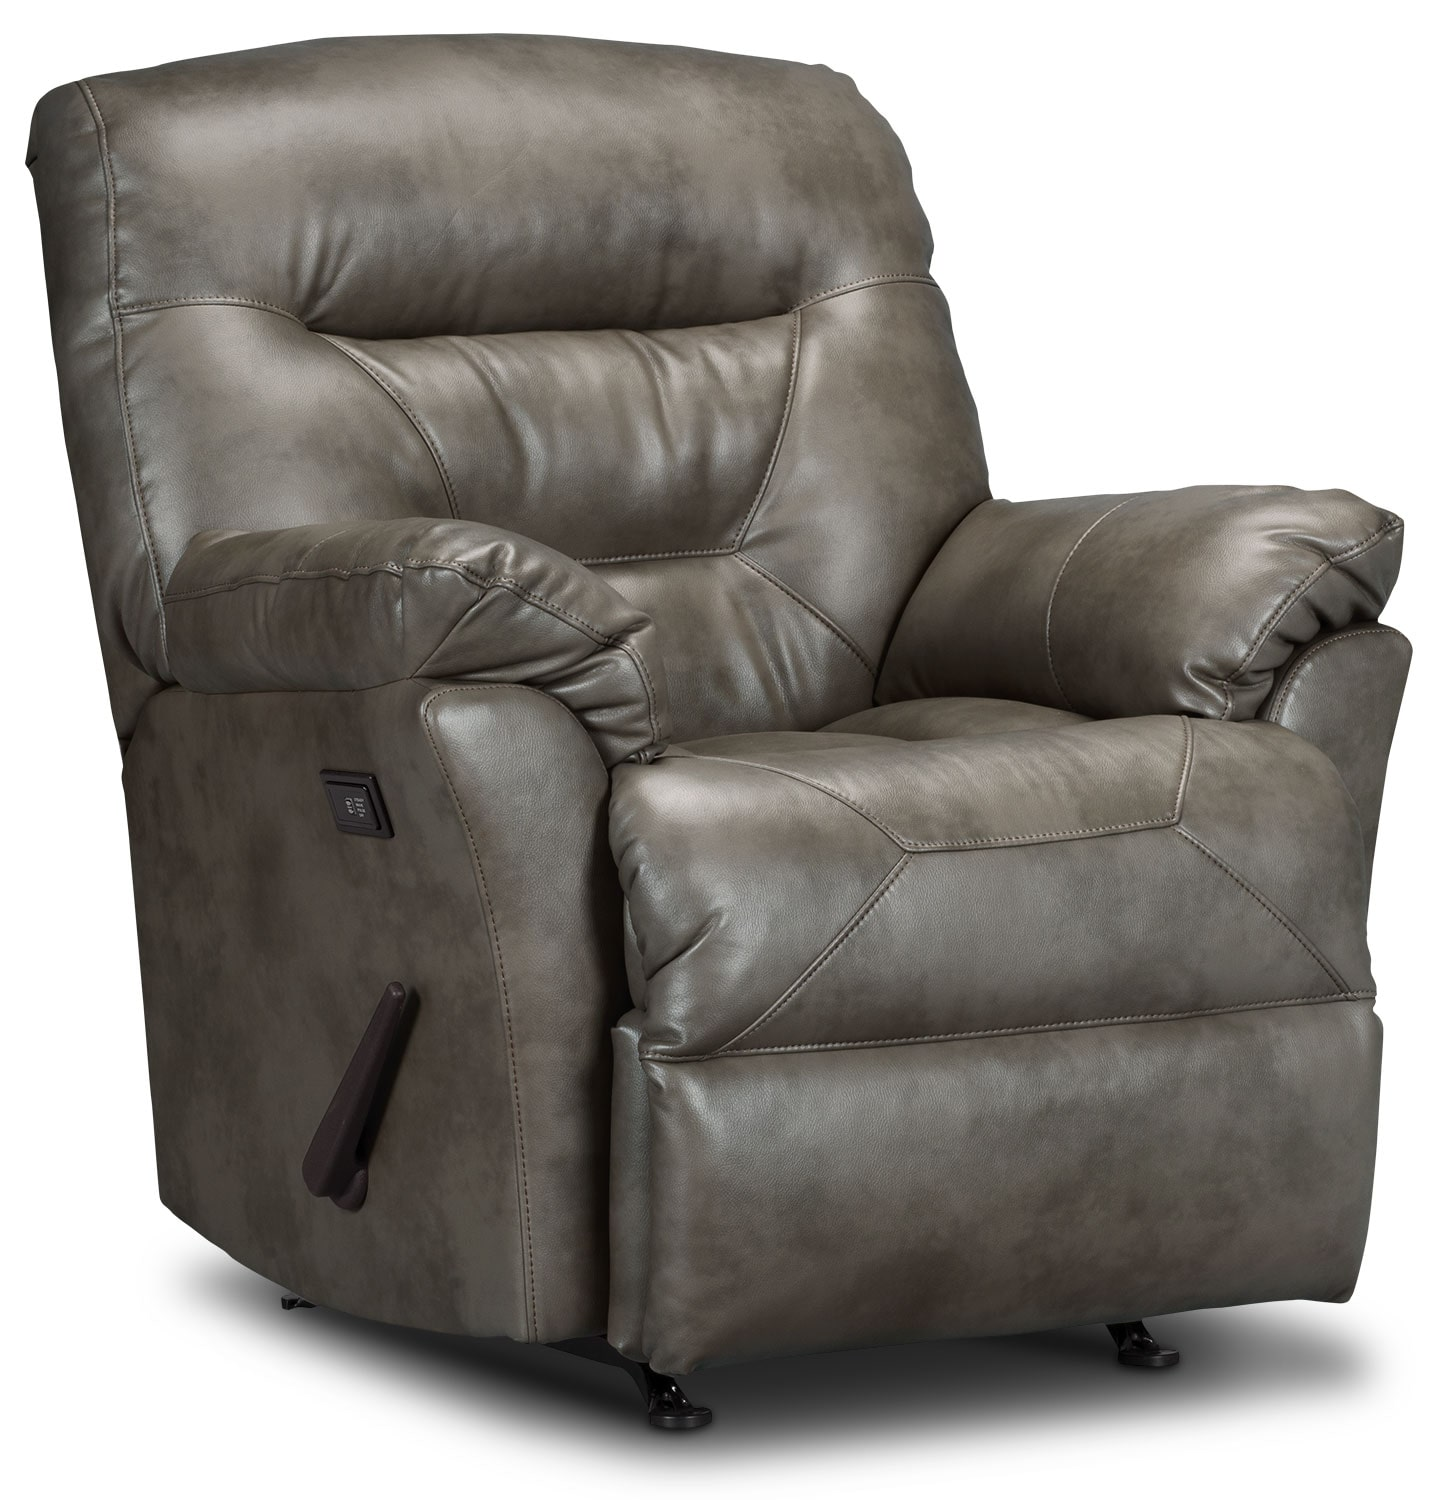 Designed2B Recliner 4579 Leather-Look Fabric Massage Recliner - Smoke